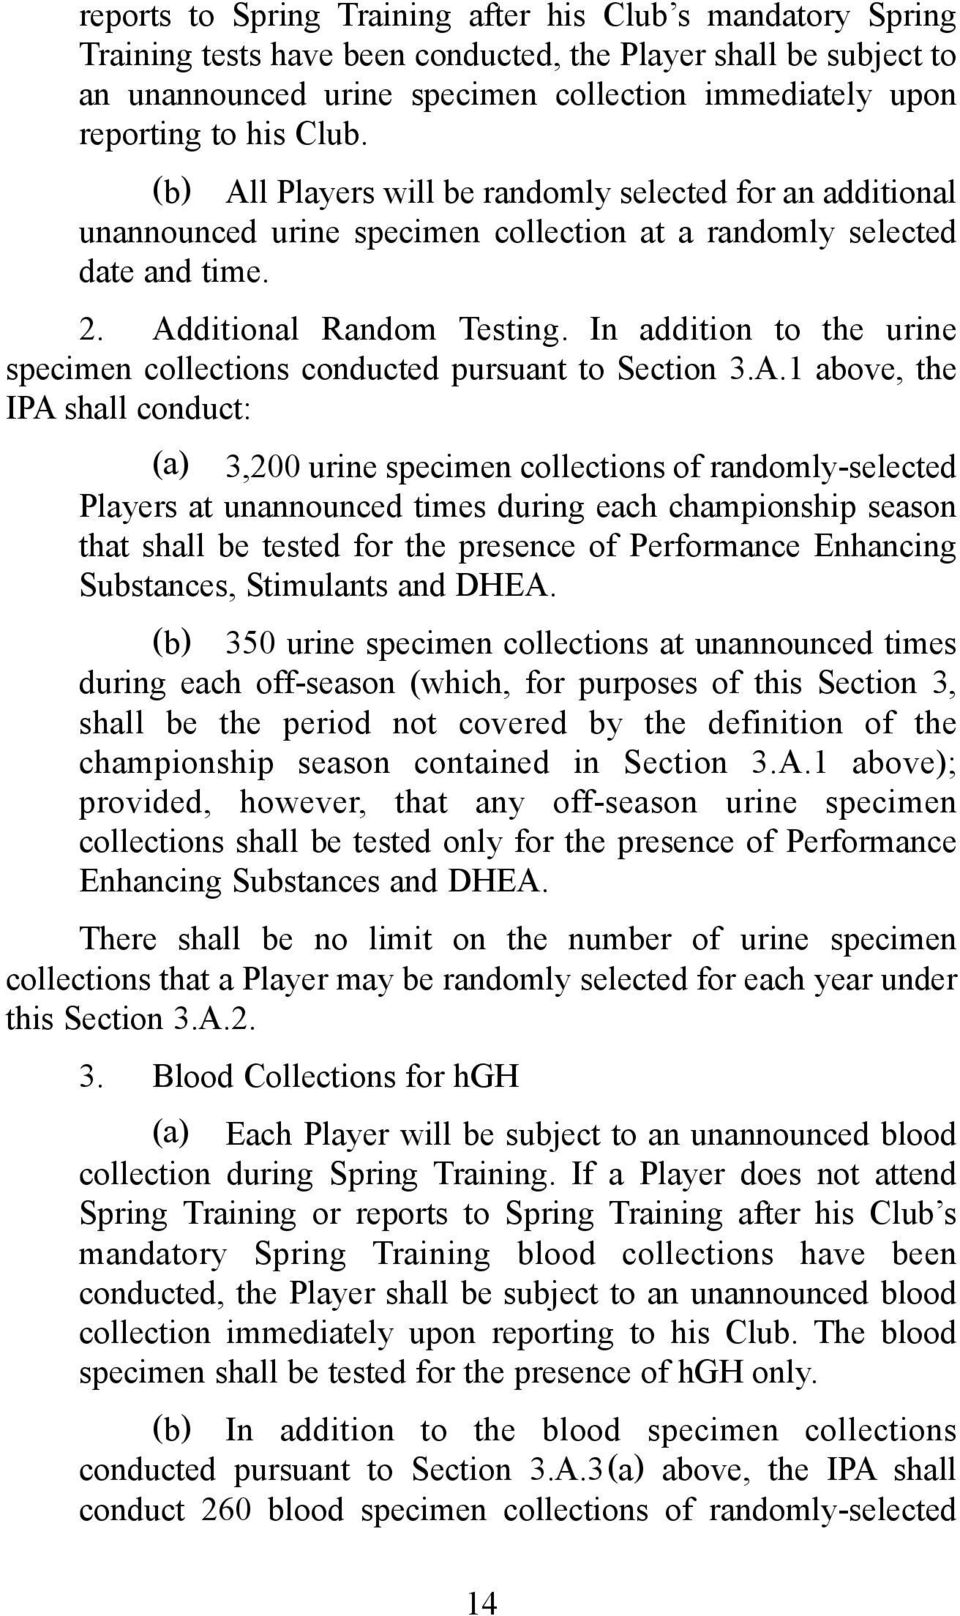 In addition to the urine specimen collections conducted pursuant to Section 3.A.